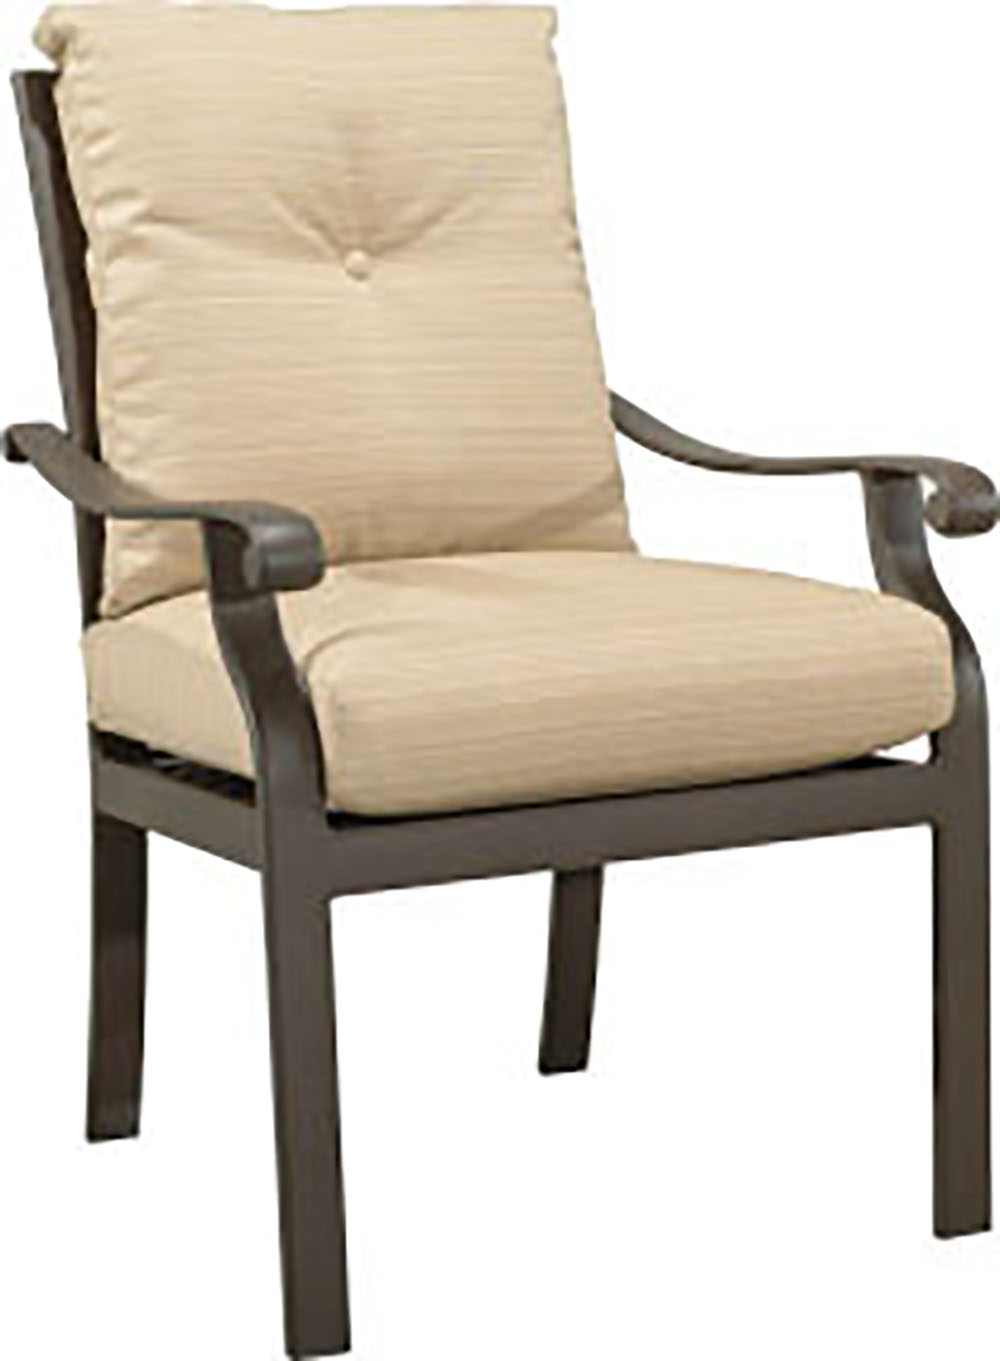 "970520 Mandalay Dining Chair   27"" x 30"" x 37"""